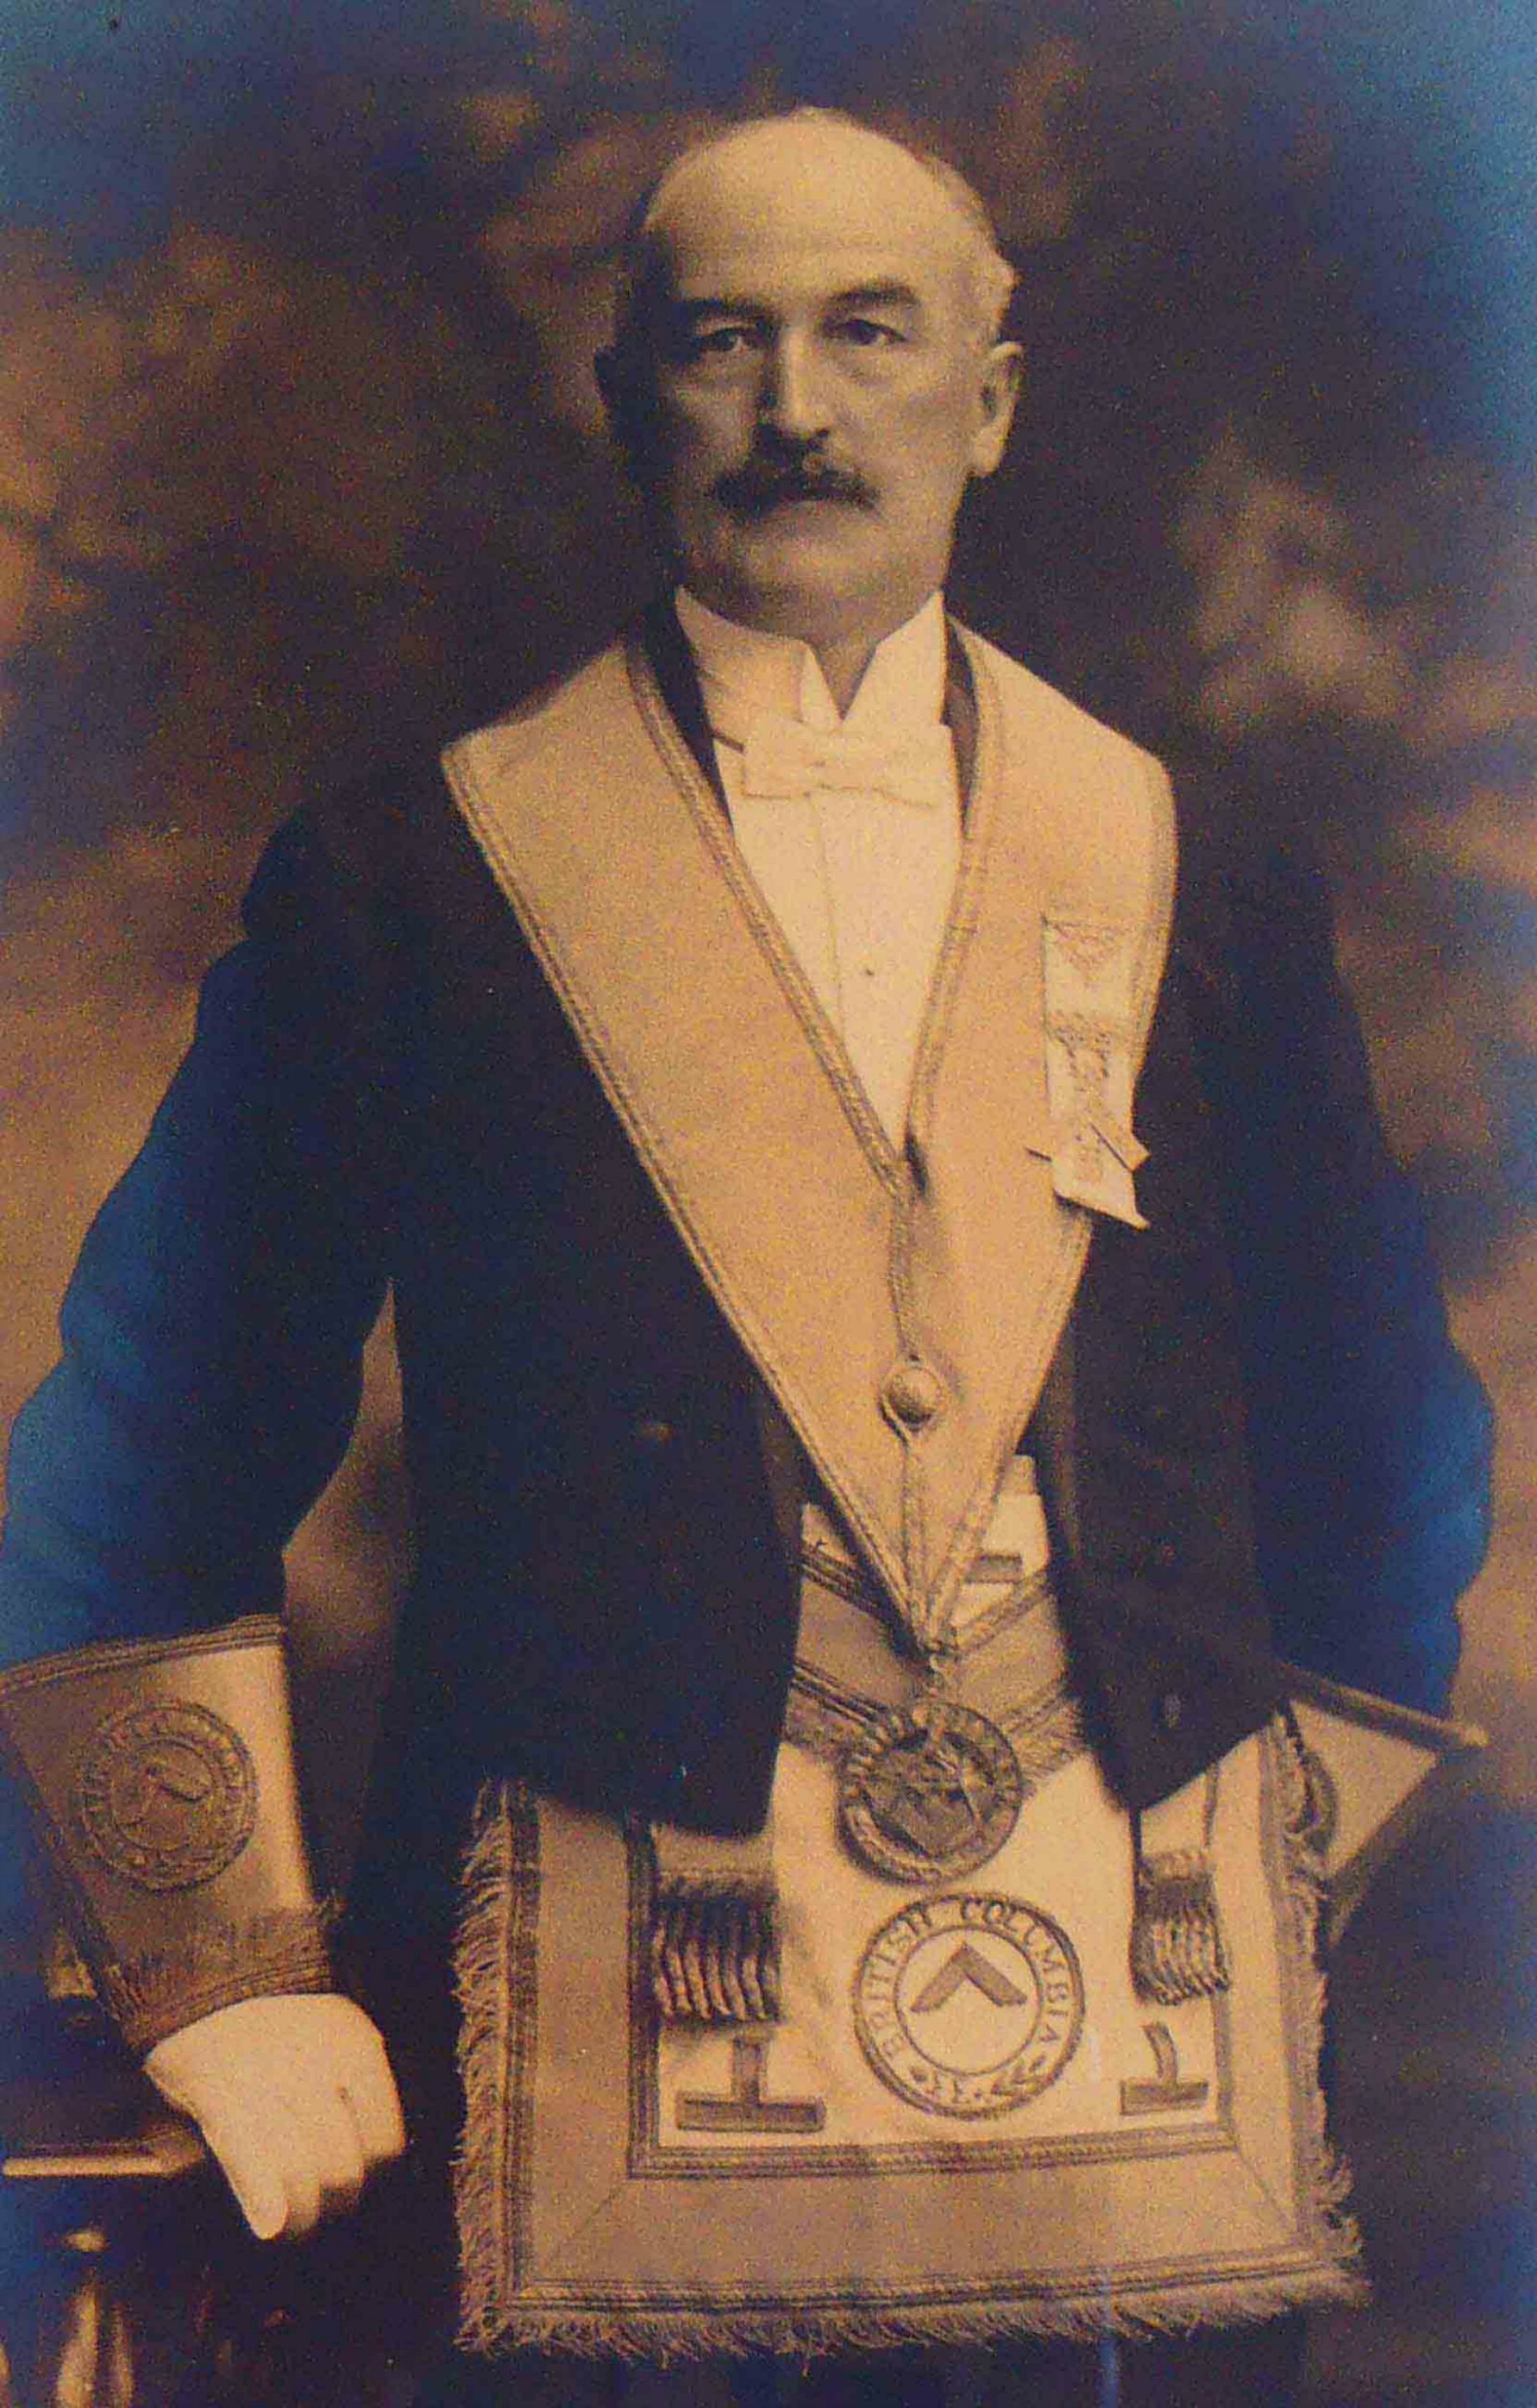 Thomas Pitt as District Deputy Grand Master, 1918